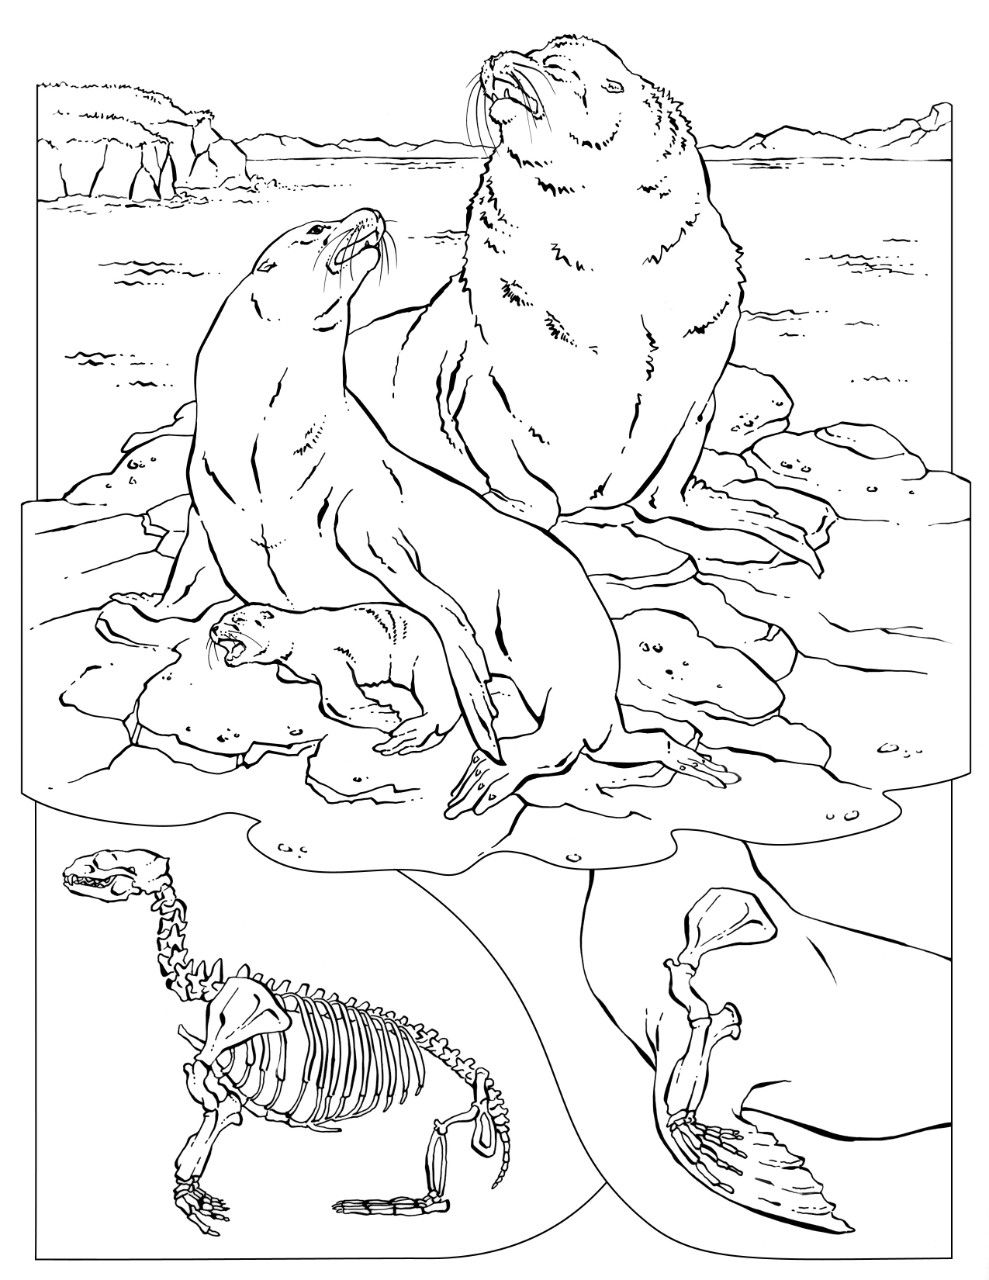 coloring pages of nature and animals backyard animals and nature coloring books free coloring nature coloring of and pages animals